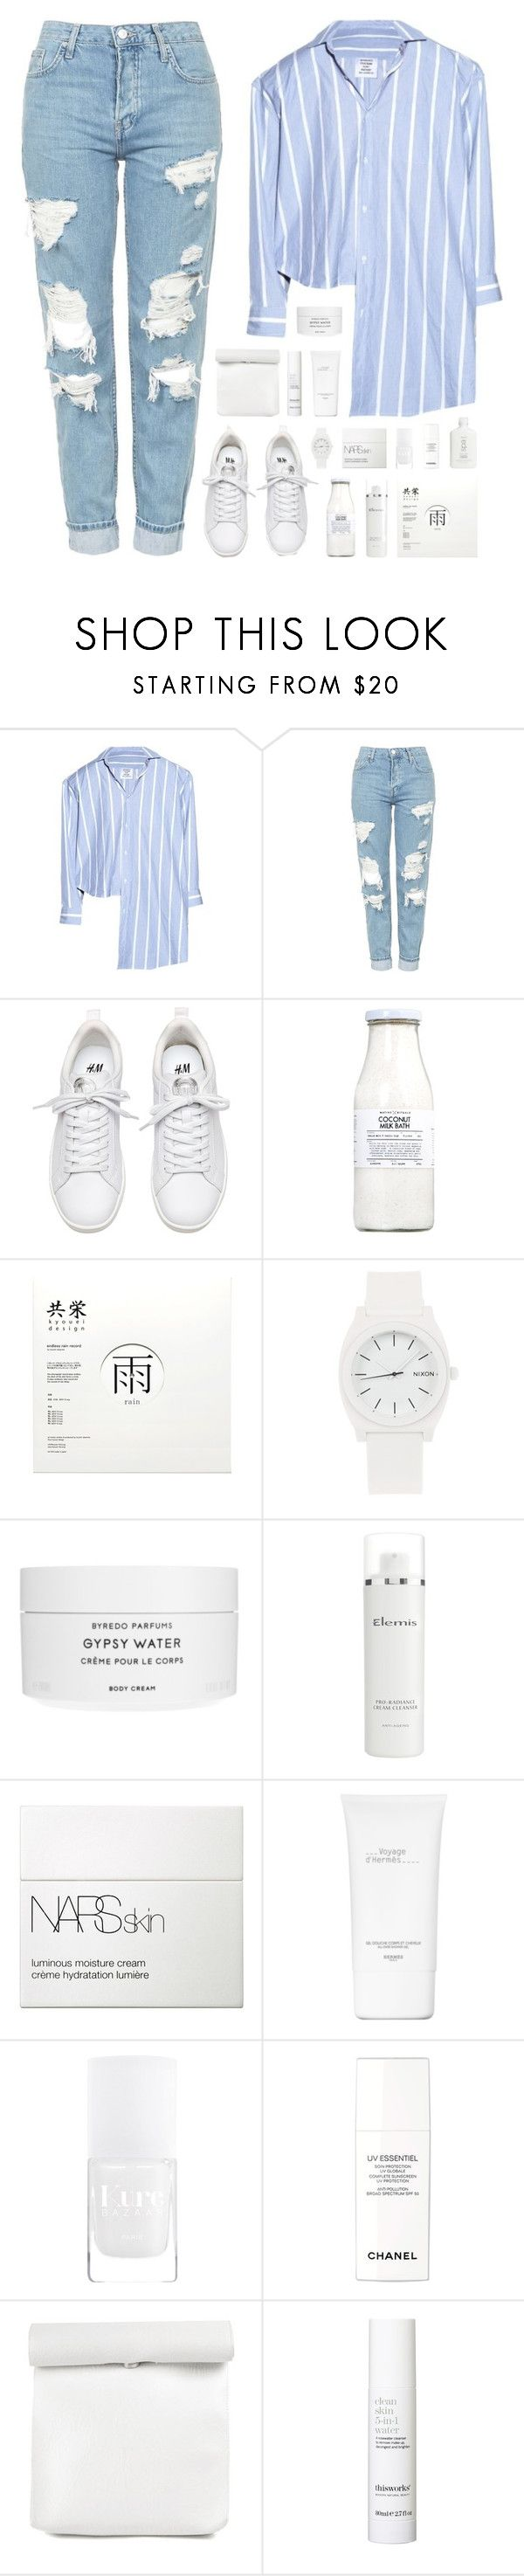 """""""treasure"""" by martosaur ❤ liked on Polyvore featuring Vetements, Topshop, Rituals, Nixon, Byredo, Elemis, NARS Cosmetics, Hermès, Chanel and This Works"""